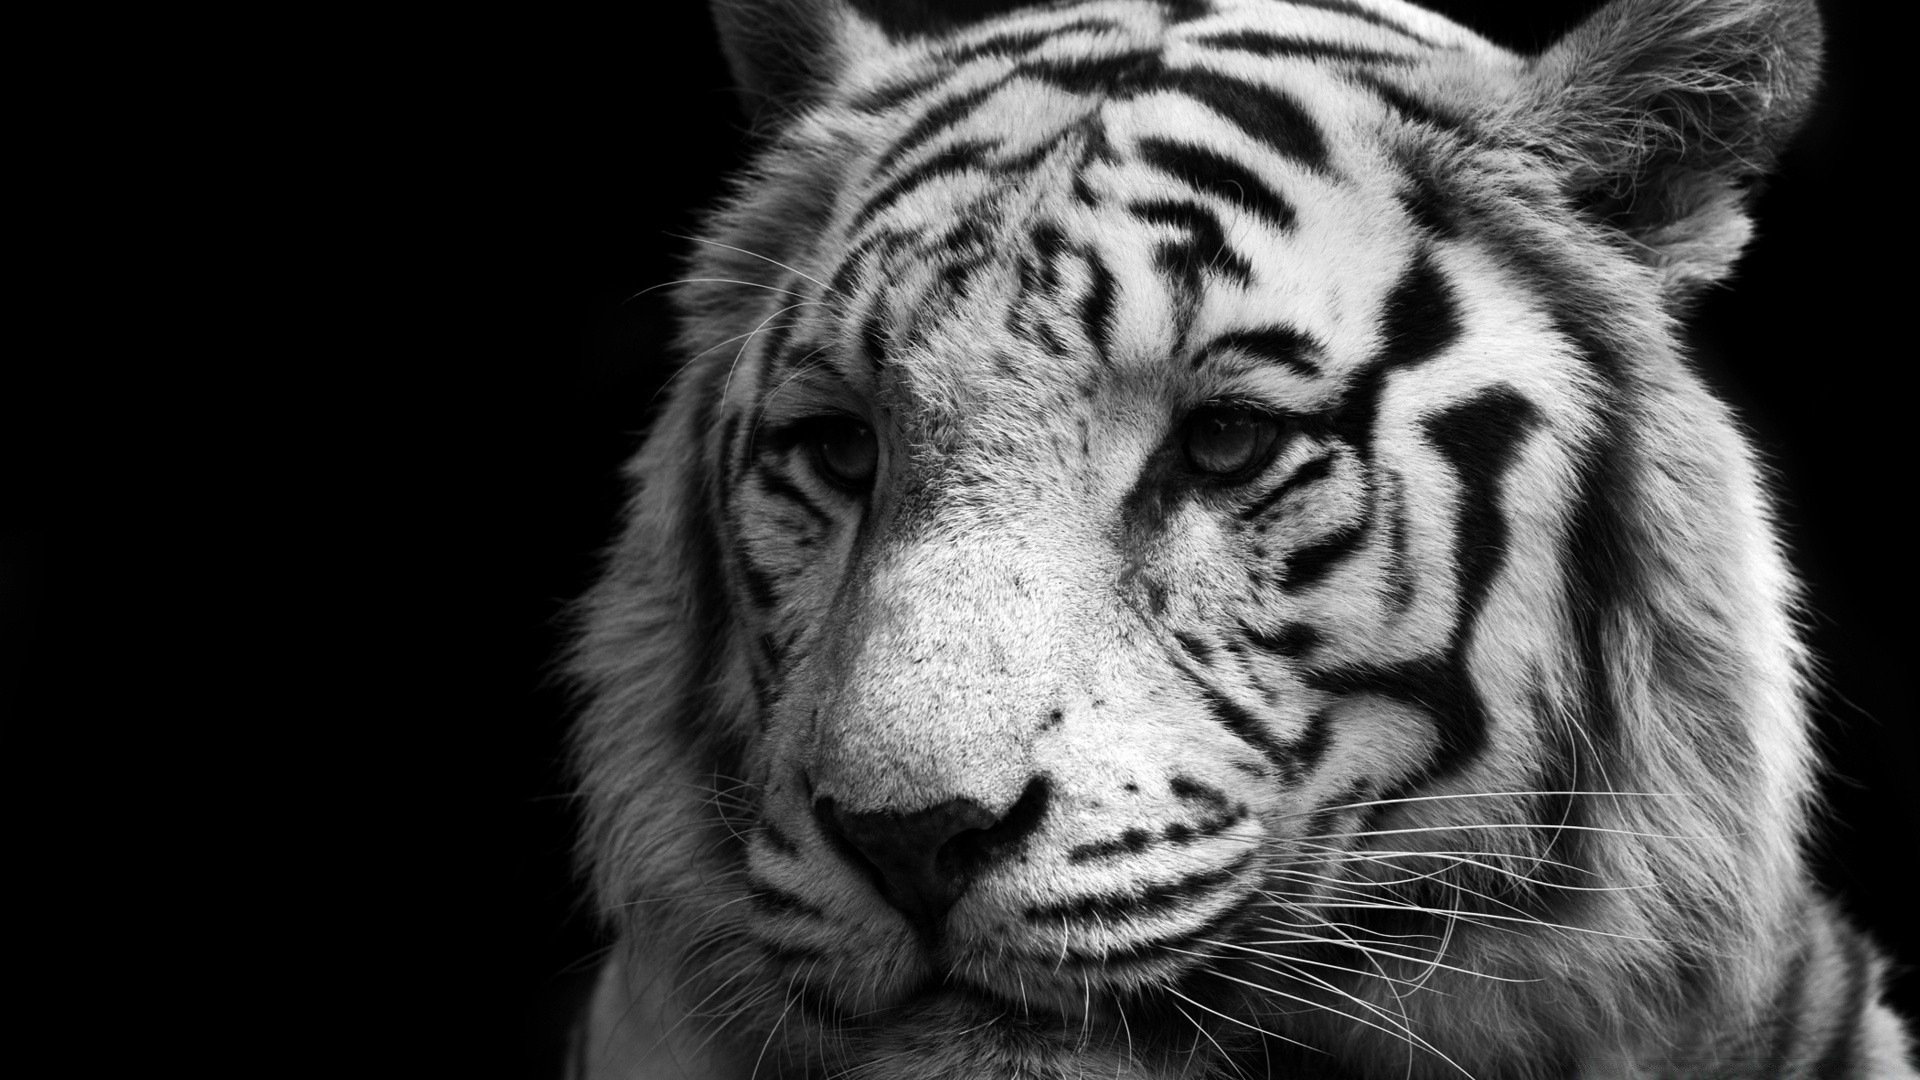 Tiger Black And White Phone Wallpapers